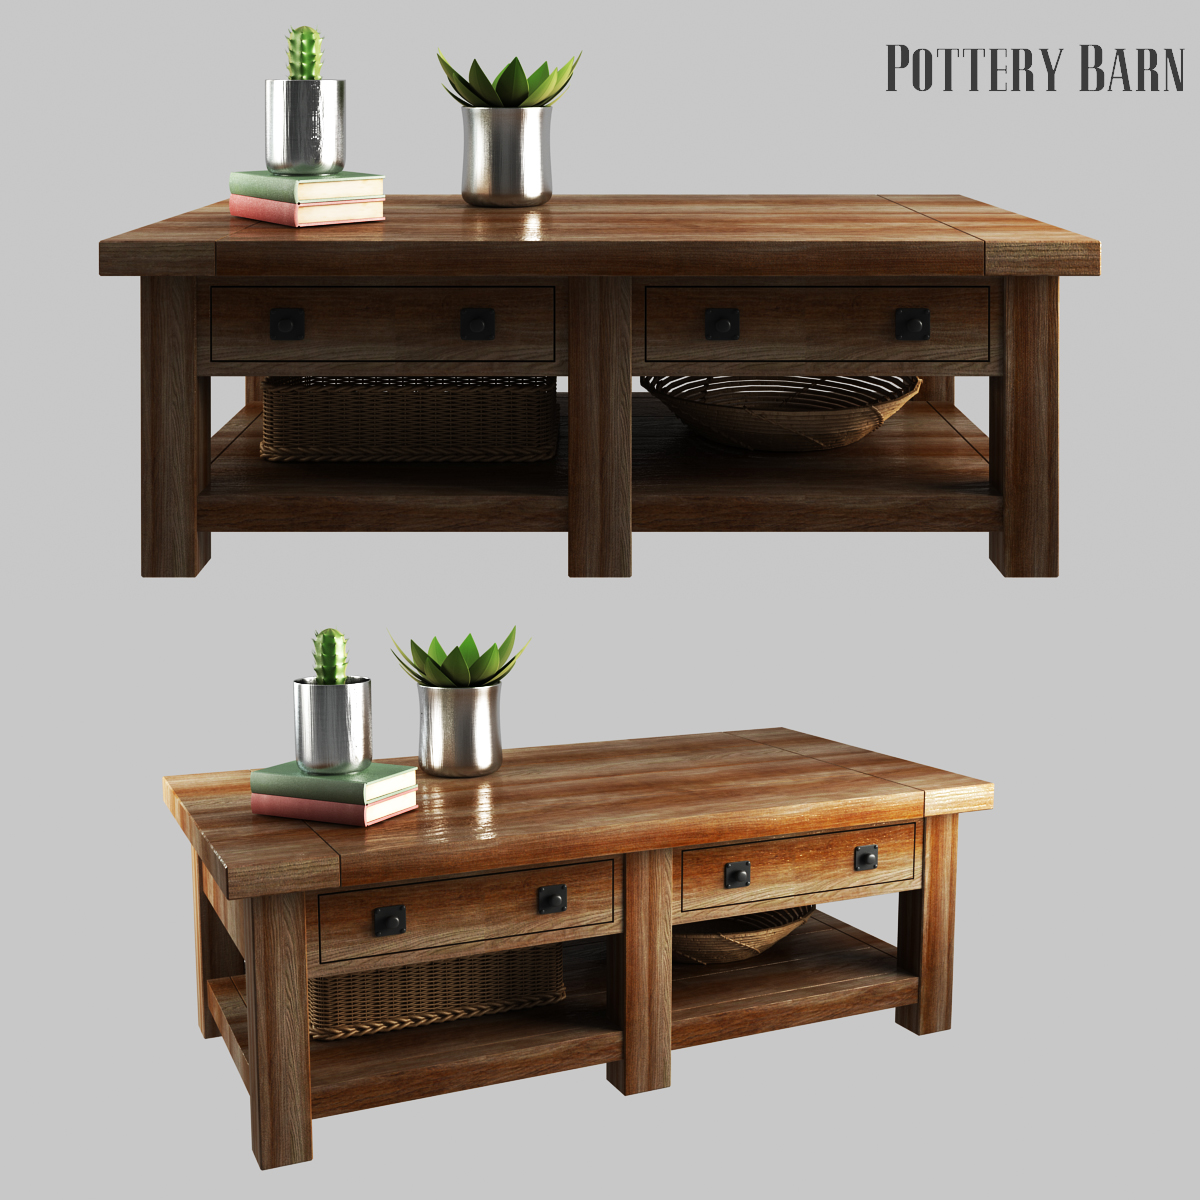 Benchwright Rectangular Coffee Table Rustic Mahogany By ErkinAliyev - Pottery barn benchwright end table